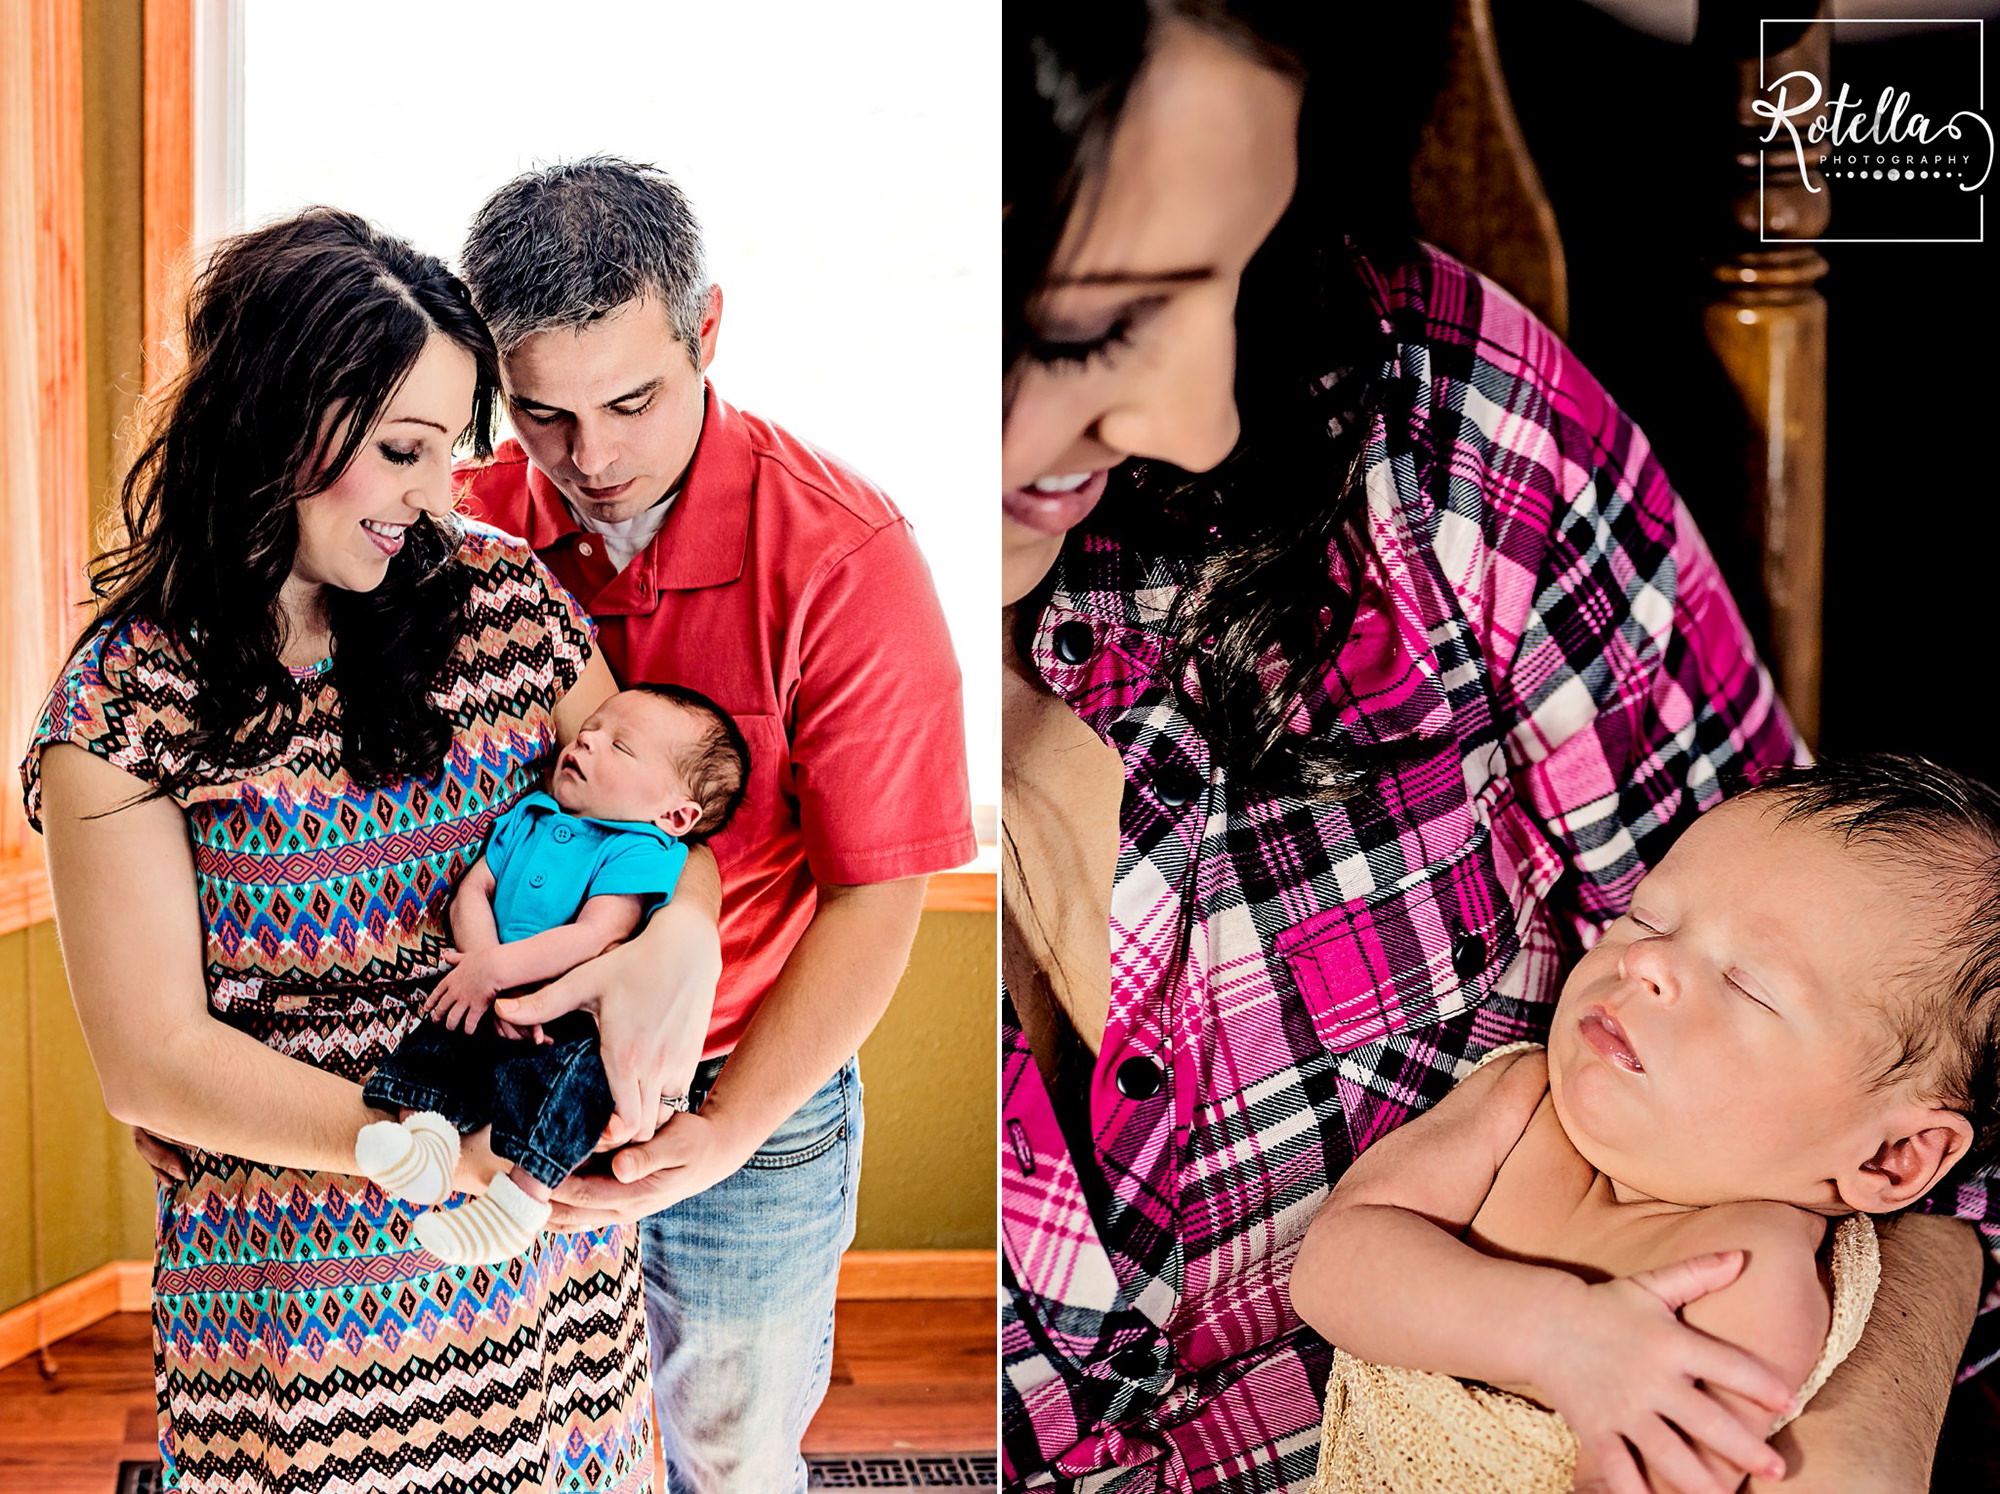 Rotella Photography - newborn baby with parents